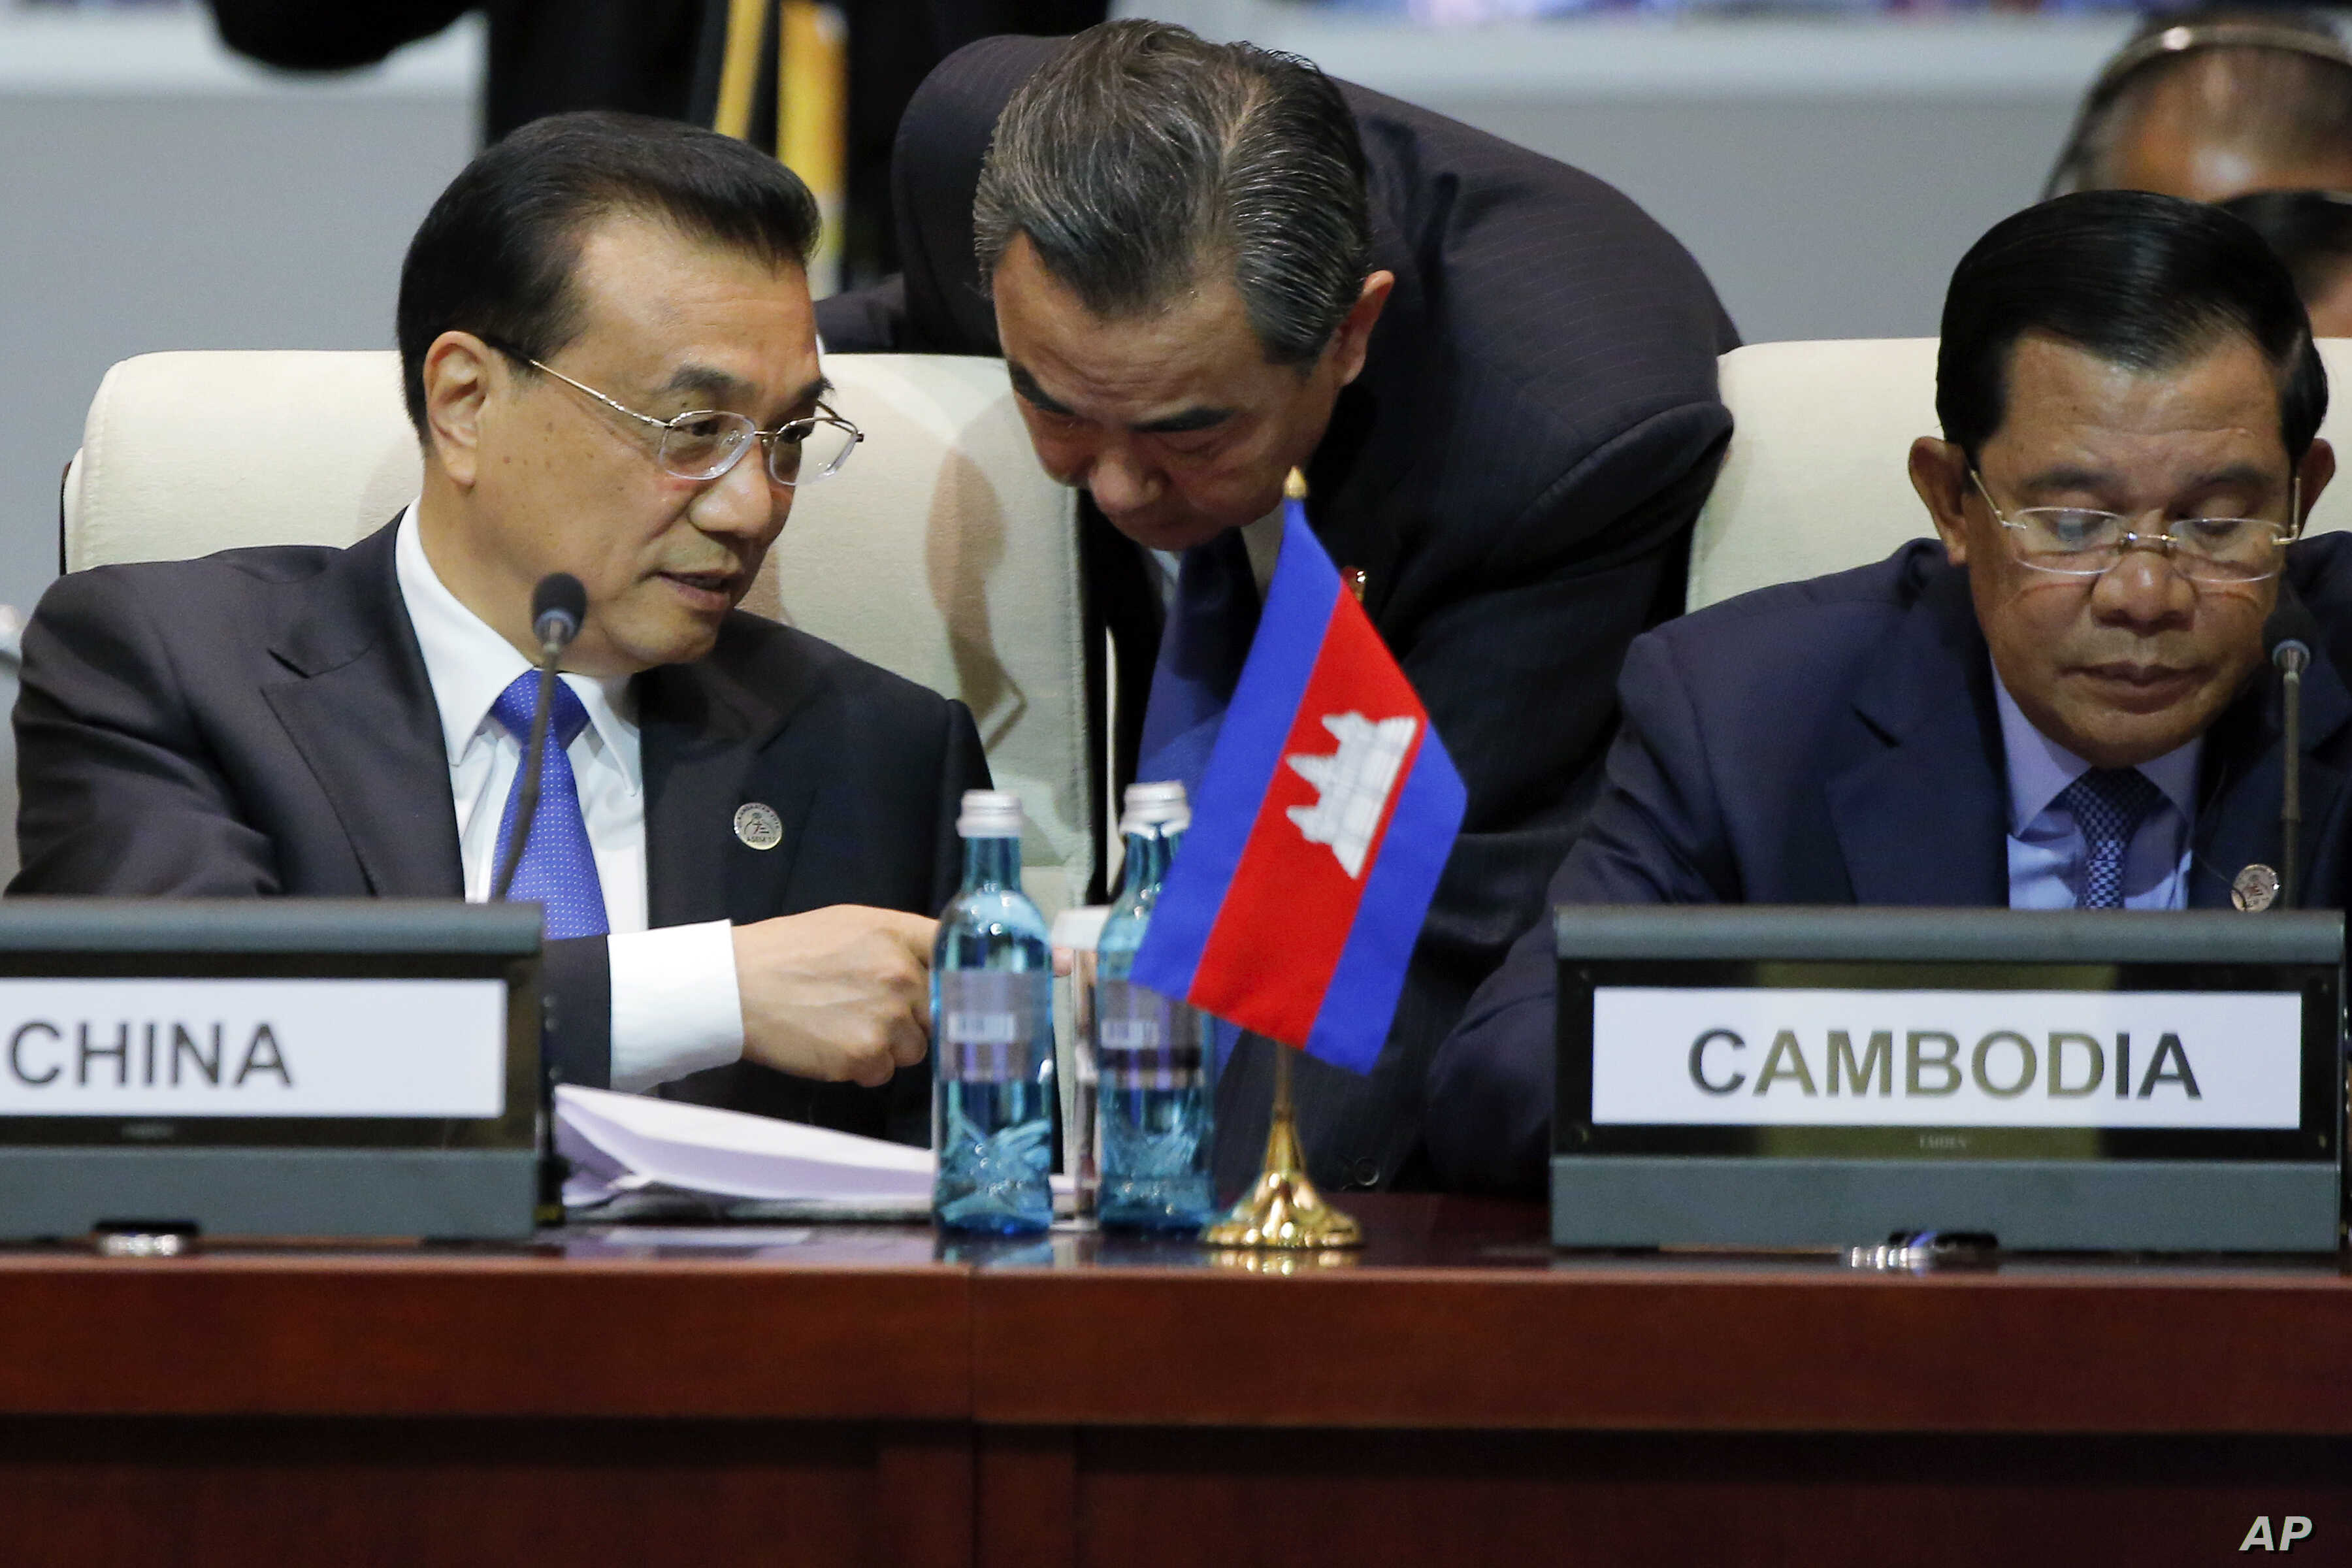 China Gives Cambodia $600M in Exchange for International